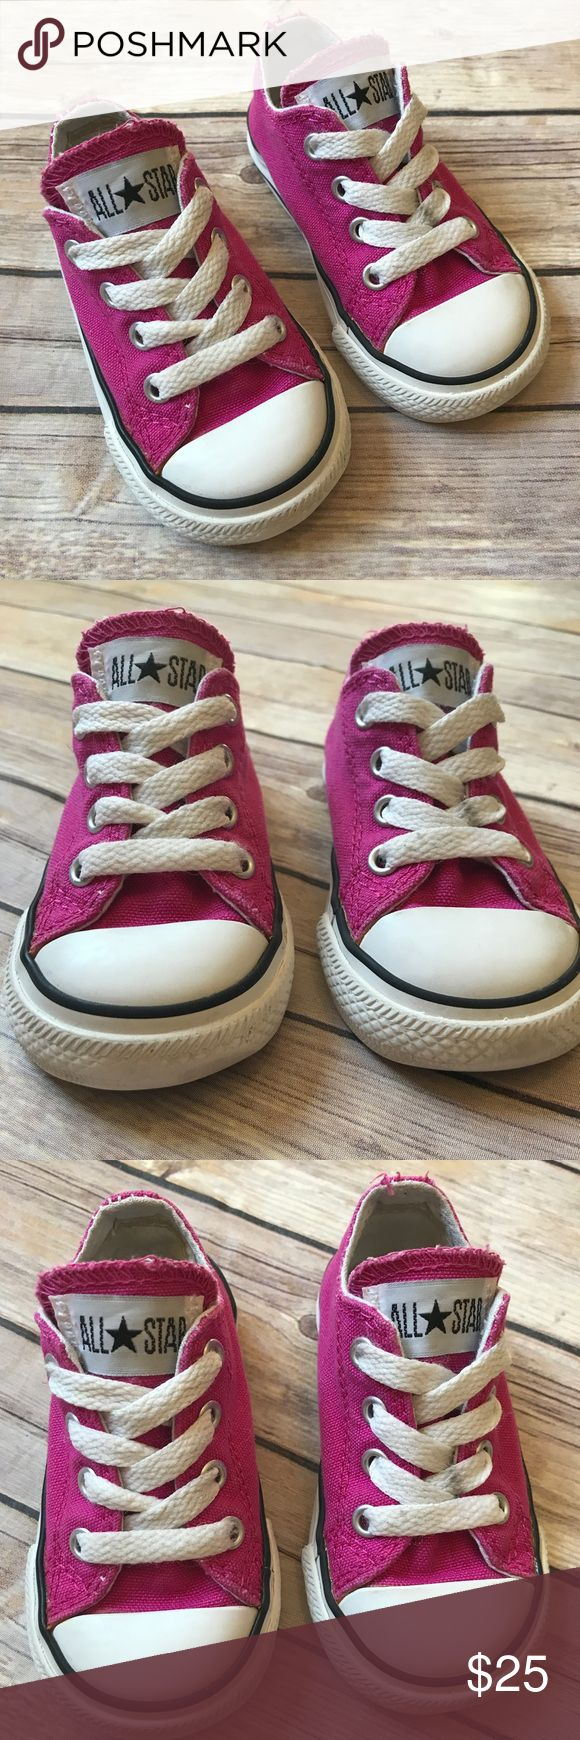 Raspberry Pink Converse Size 5 toddler Raspberry Pink Converse. Canvas and foot beds very clean. Toes are a little worn (see close up pic). Logos are in great shape. Laces are pretty clean except for one tiny black smudge. Very good condition. Converse Shoes Sneakers